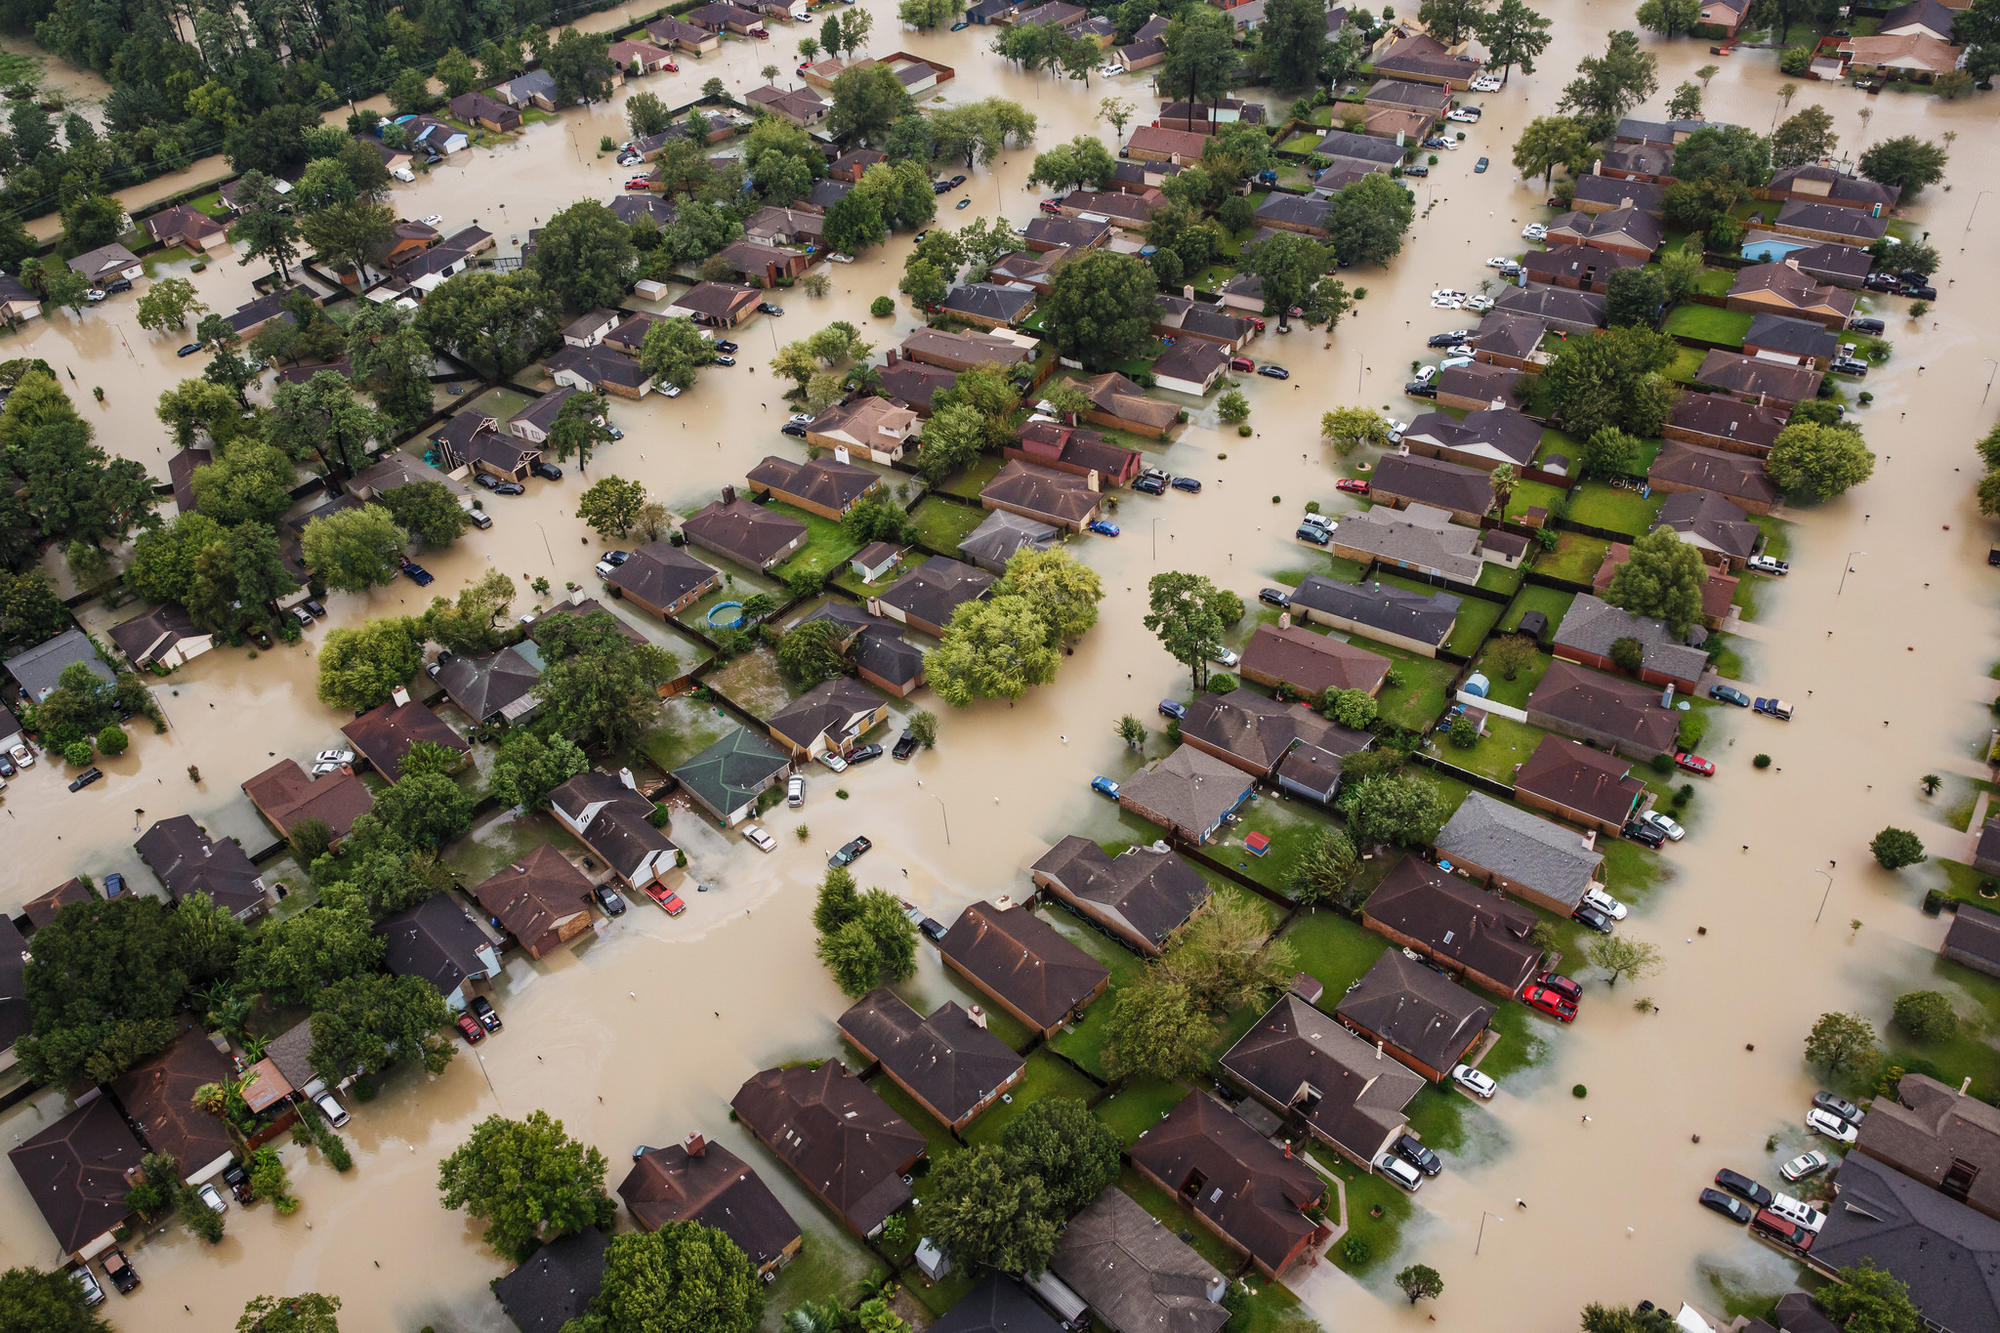 A flooded residential neighborhood near Interstate 10 in Houston, Texas.